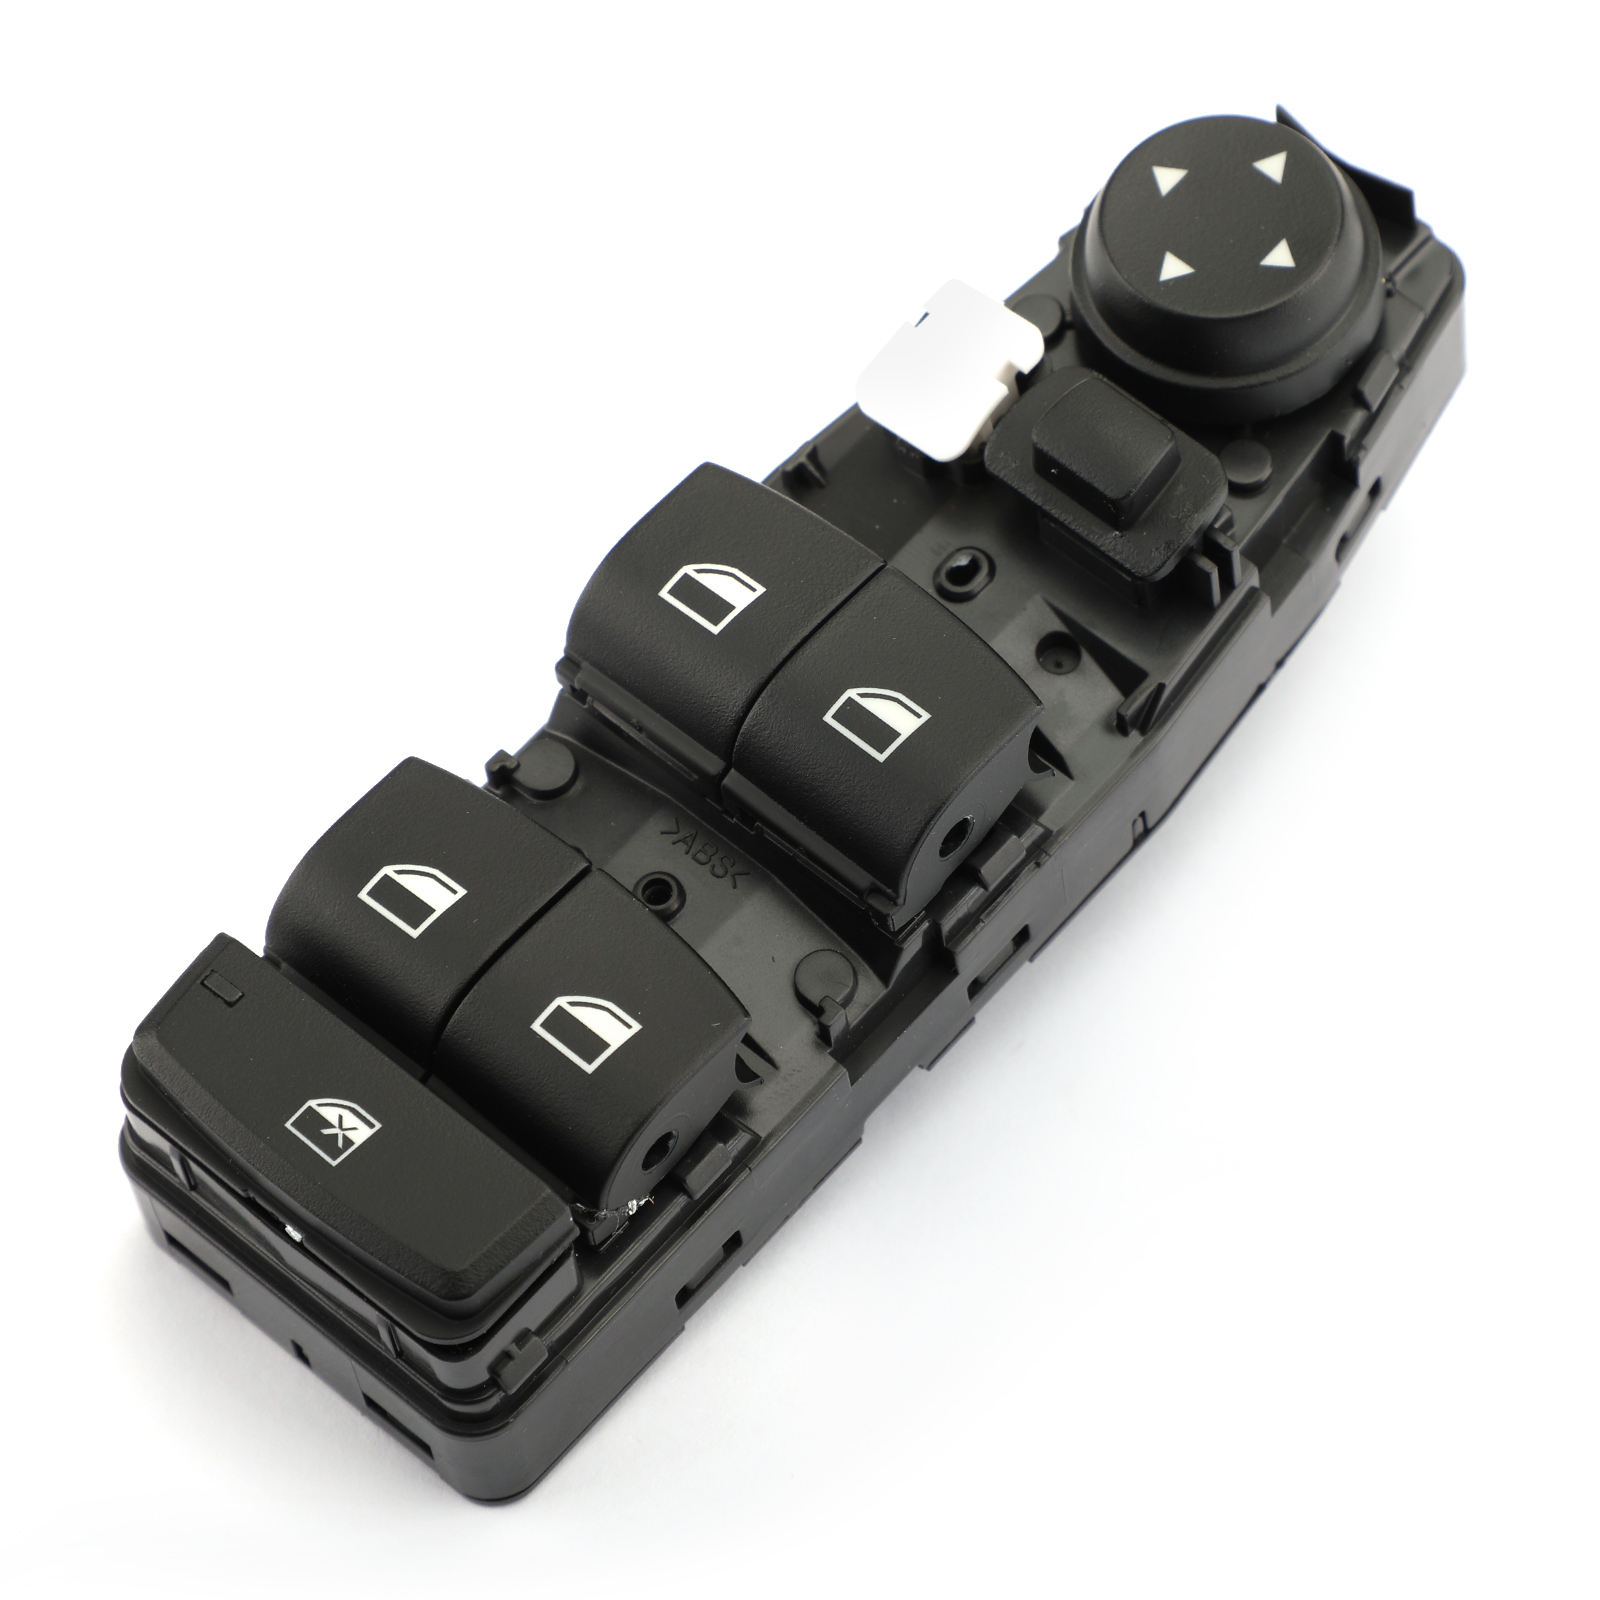 Driver Window Lift Switch Control For BMW E83 X3 04-10 61313414355 61313413431